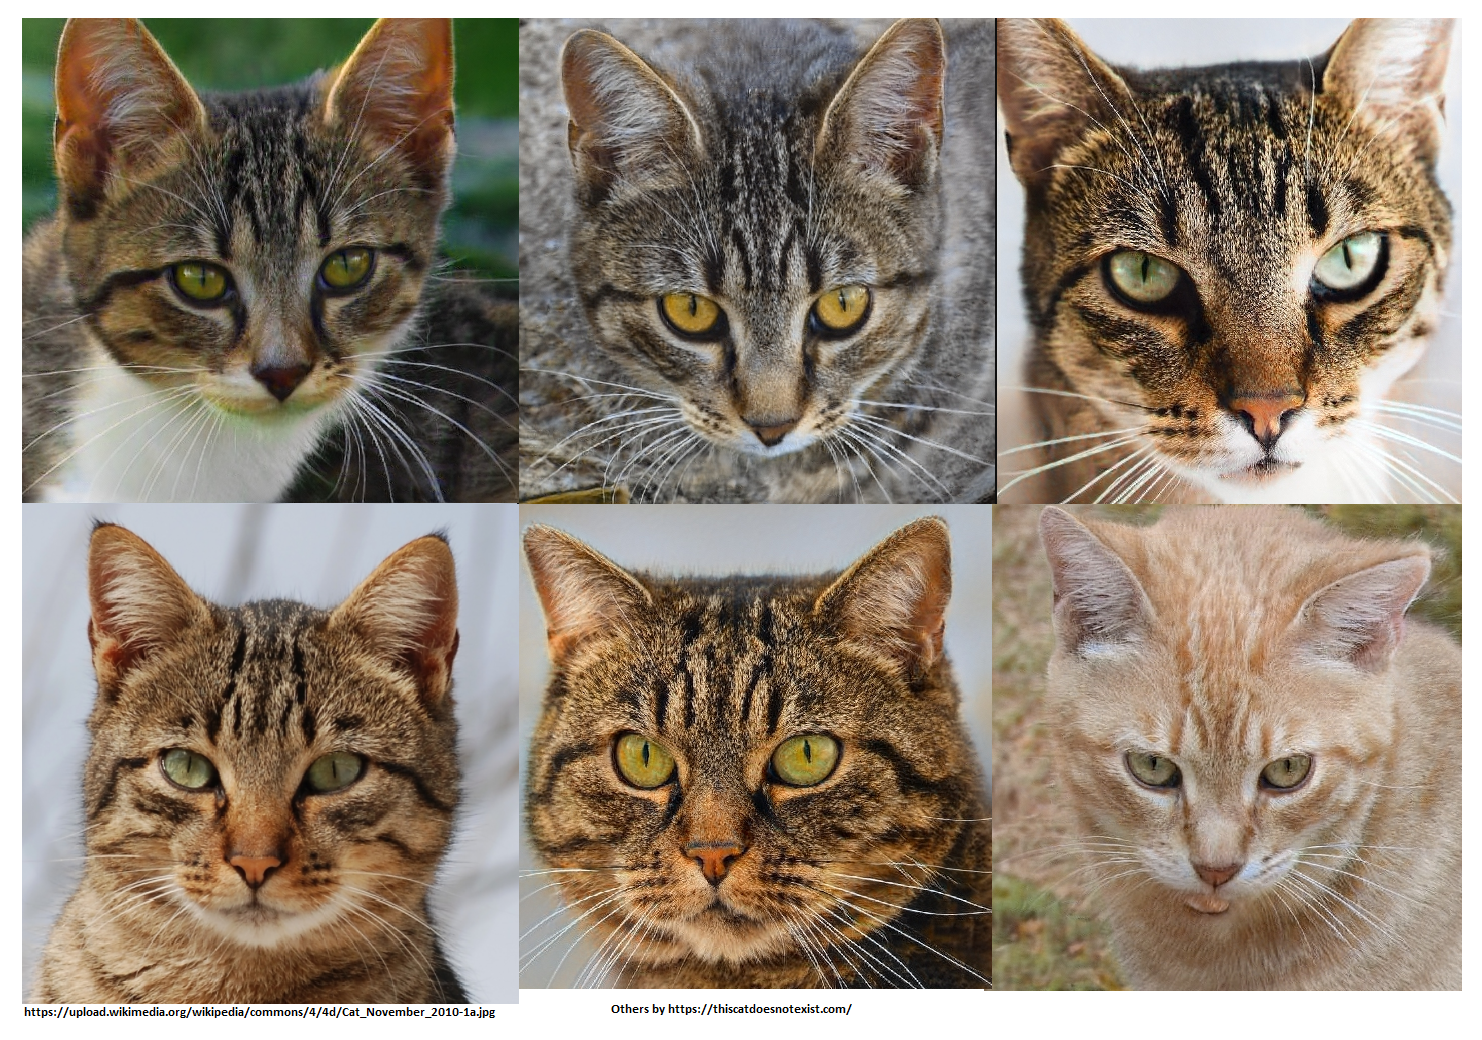 5 fake cats one real in lower left hand corner